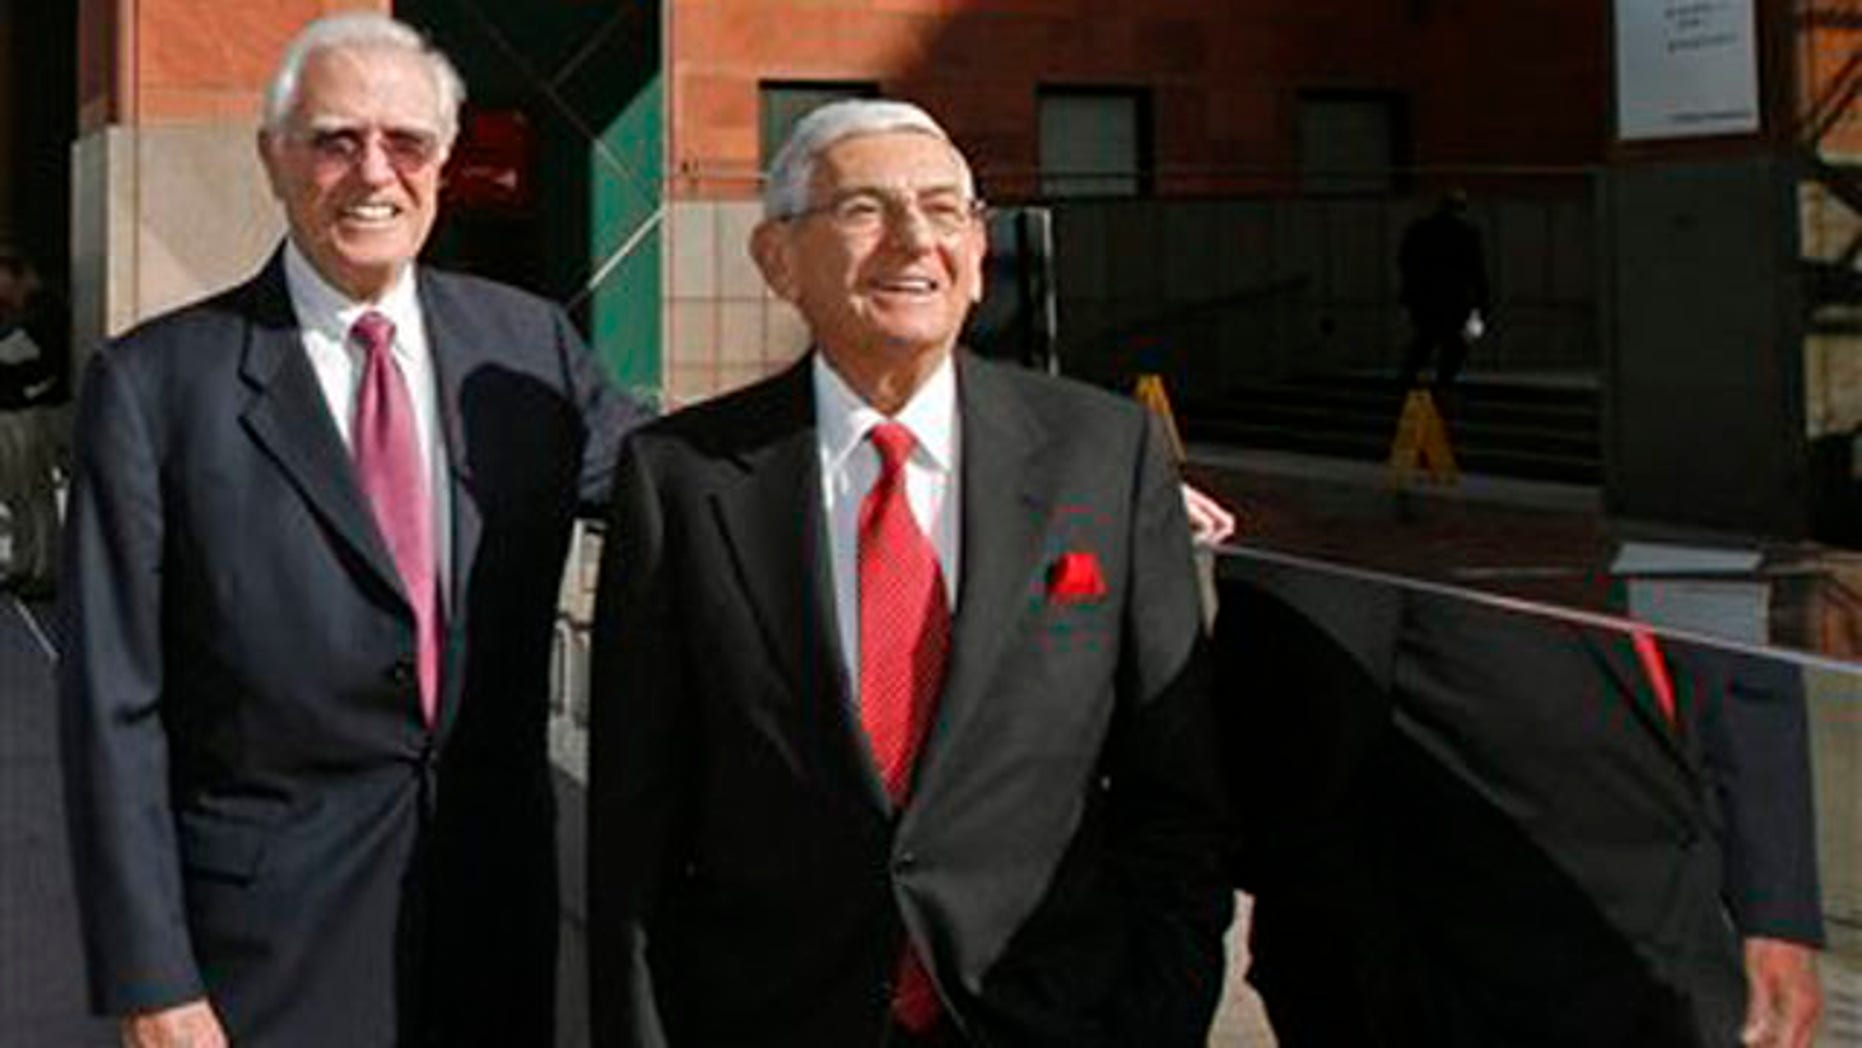 Dec. 23, 2008: Eli Broad, right, and Charles Young, CEO of Museum of Contemporary Art's pose outside the downtown Los Angeles museum (AP).